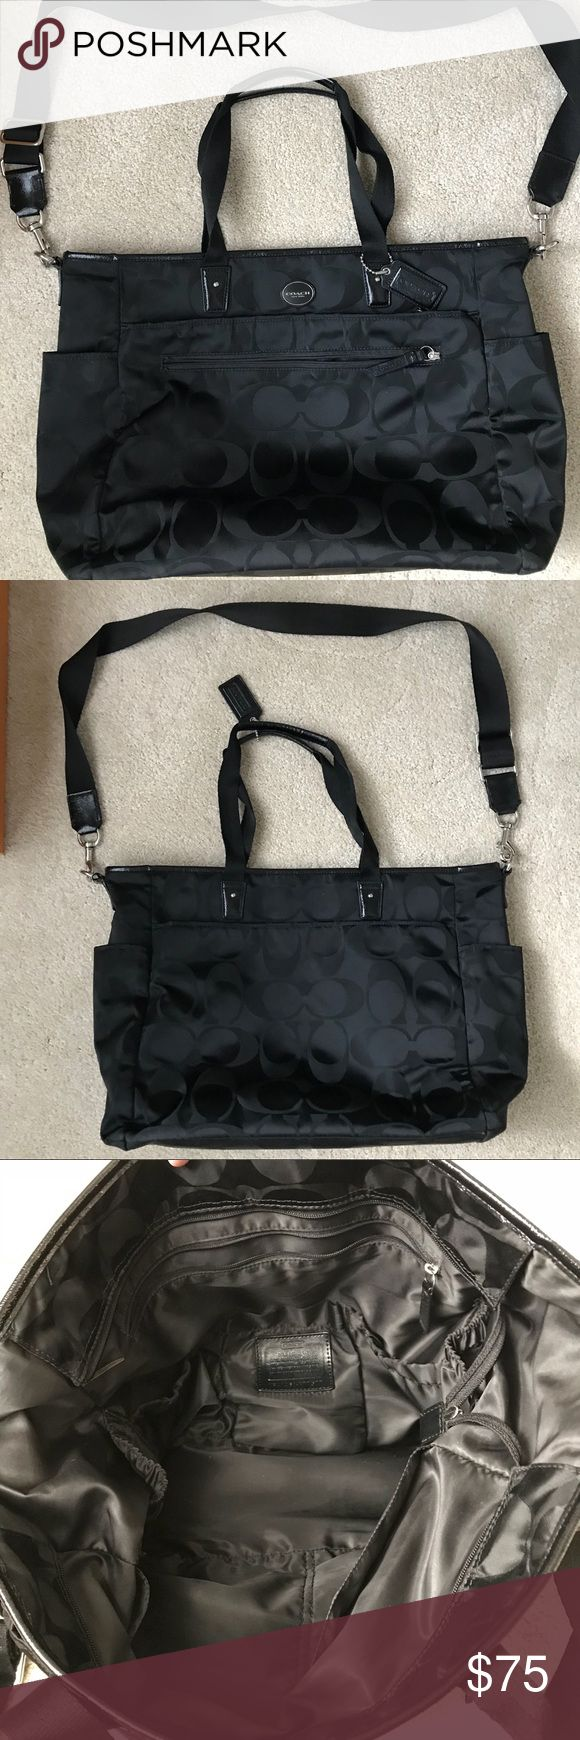 """Coach Diaper Bag Black coach diaper bag. No stains anywhere, looks brand new, nylon exterior for easy cleaning. Comes with shoulder strap and matching changing pad. Measures approx 19""""L x 13""""H. Coach Bags Baby Bags"""